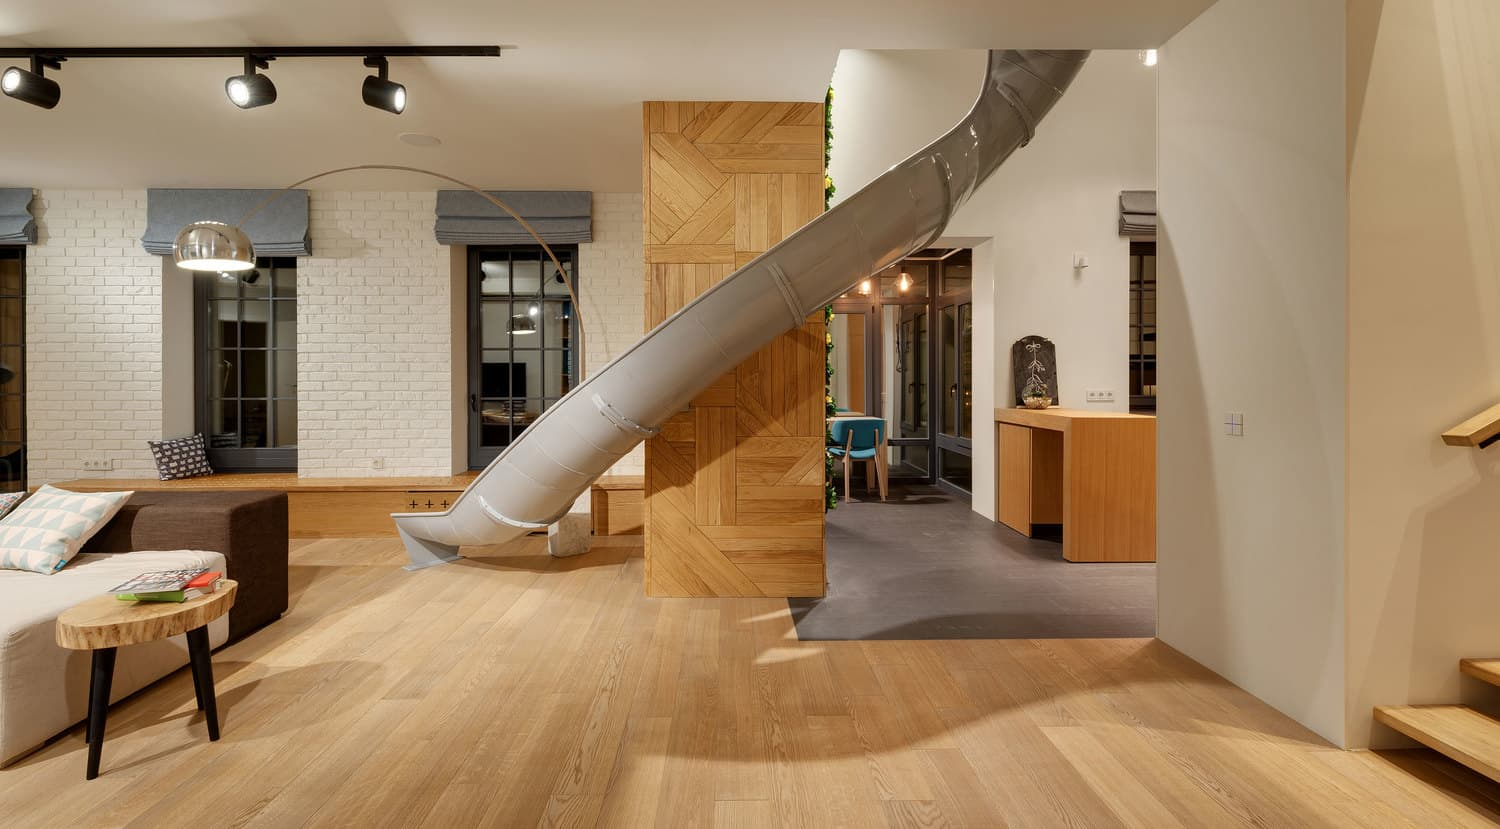 Apartment With Slide-KI Design-06-1 Kindesign